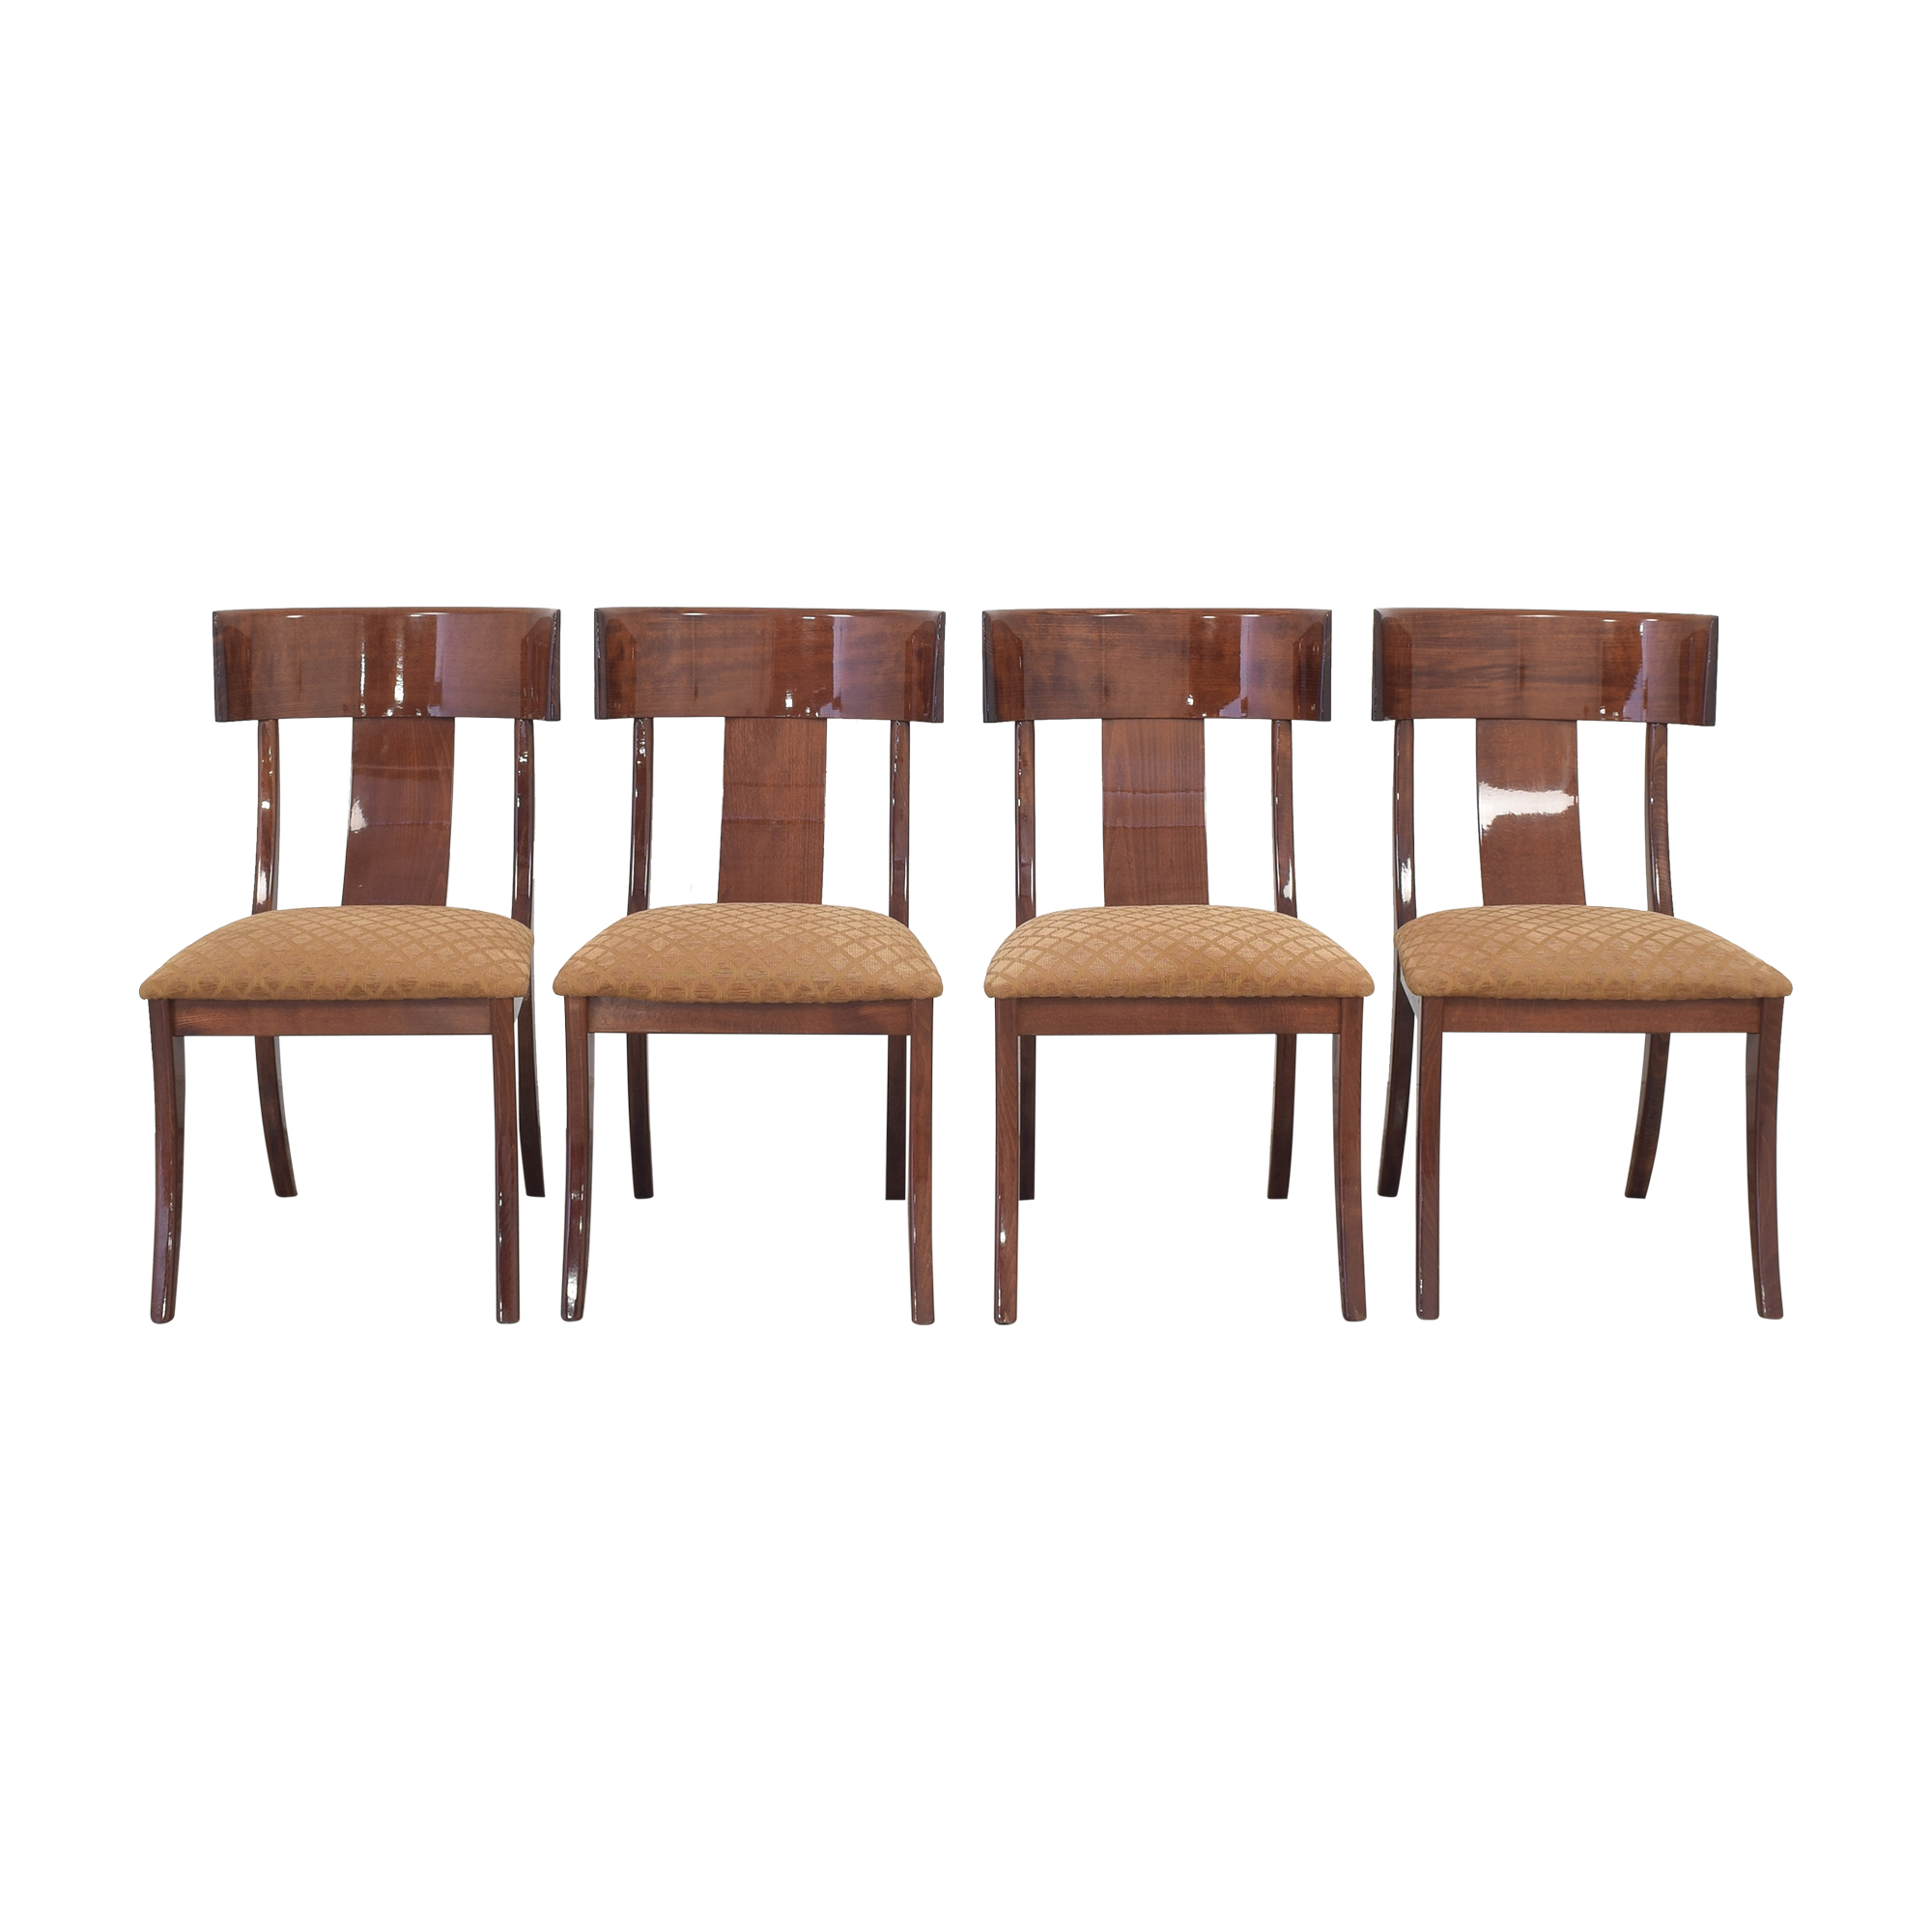 Ello Furniture Pietro Constantini for Ello Klismos Dining Chairs ma